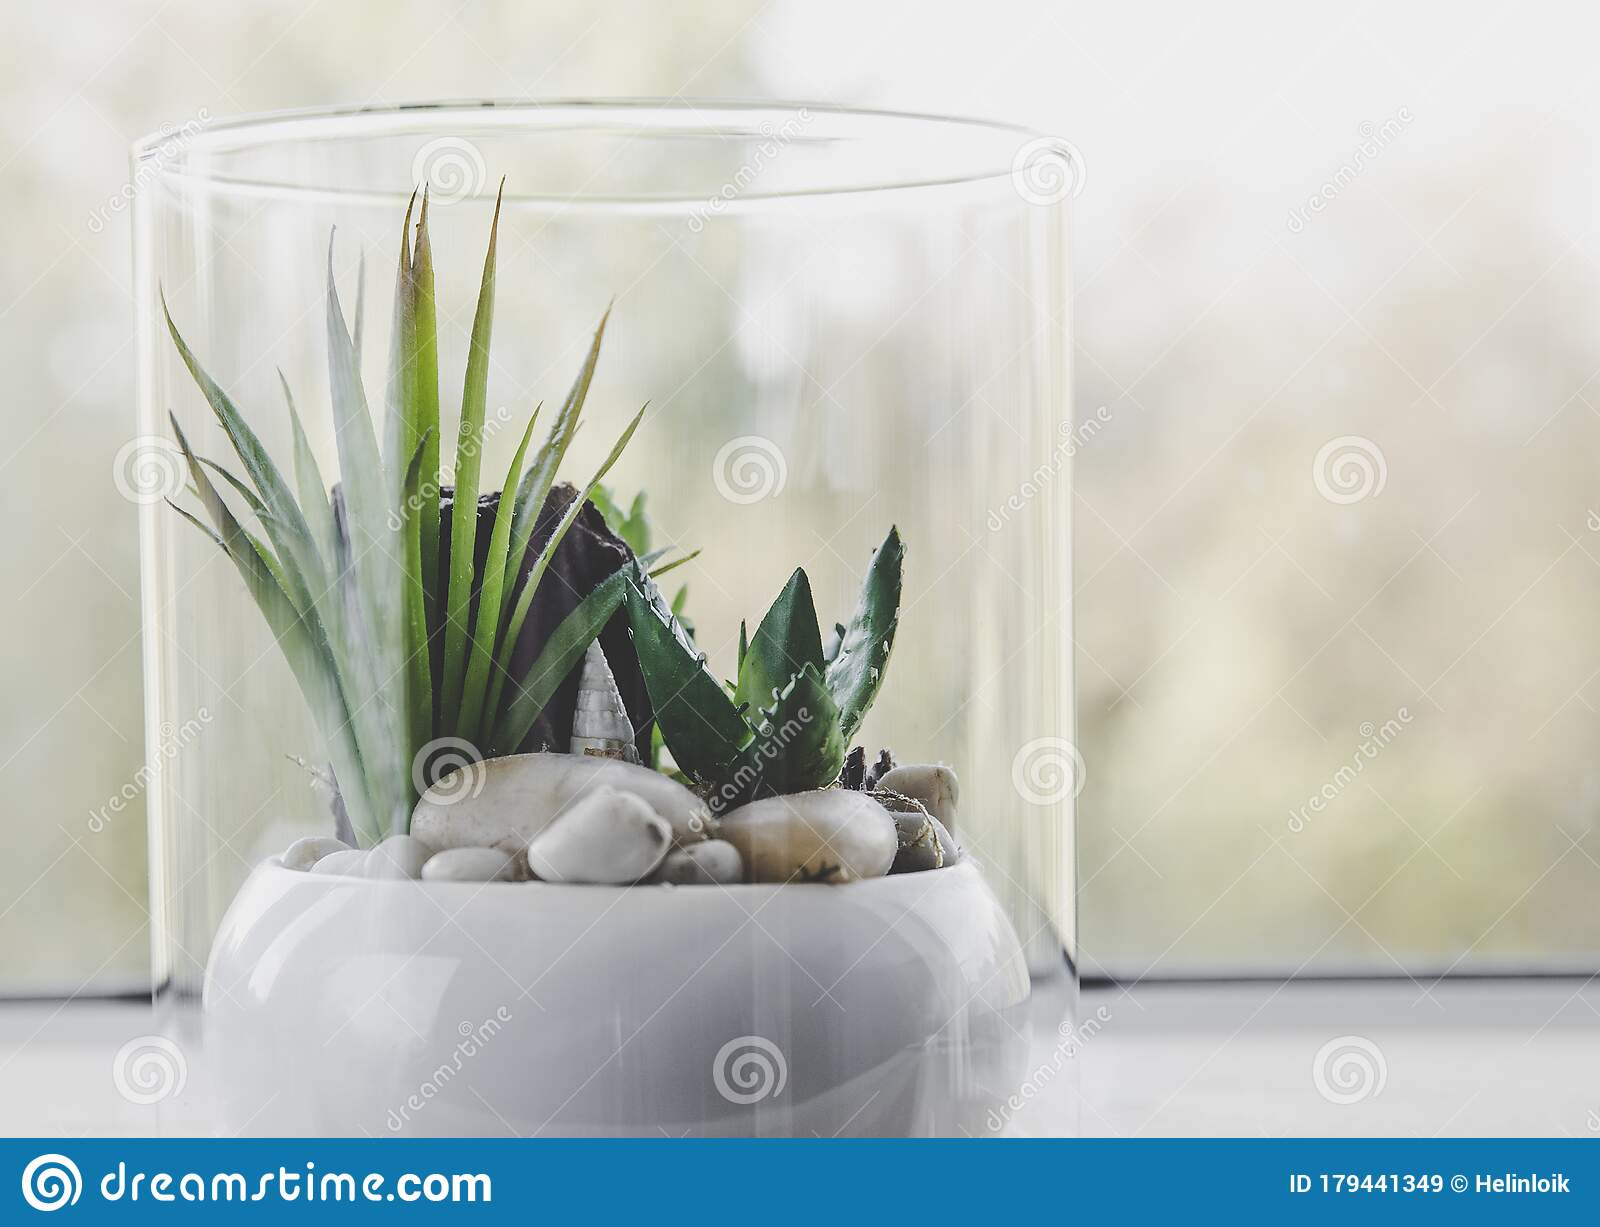 1 801 Terrarium Plants Photos Free Royalty Free Stock Photos From Dreamstime